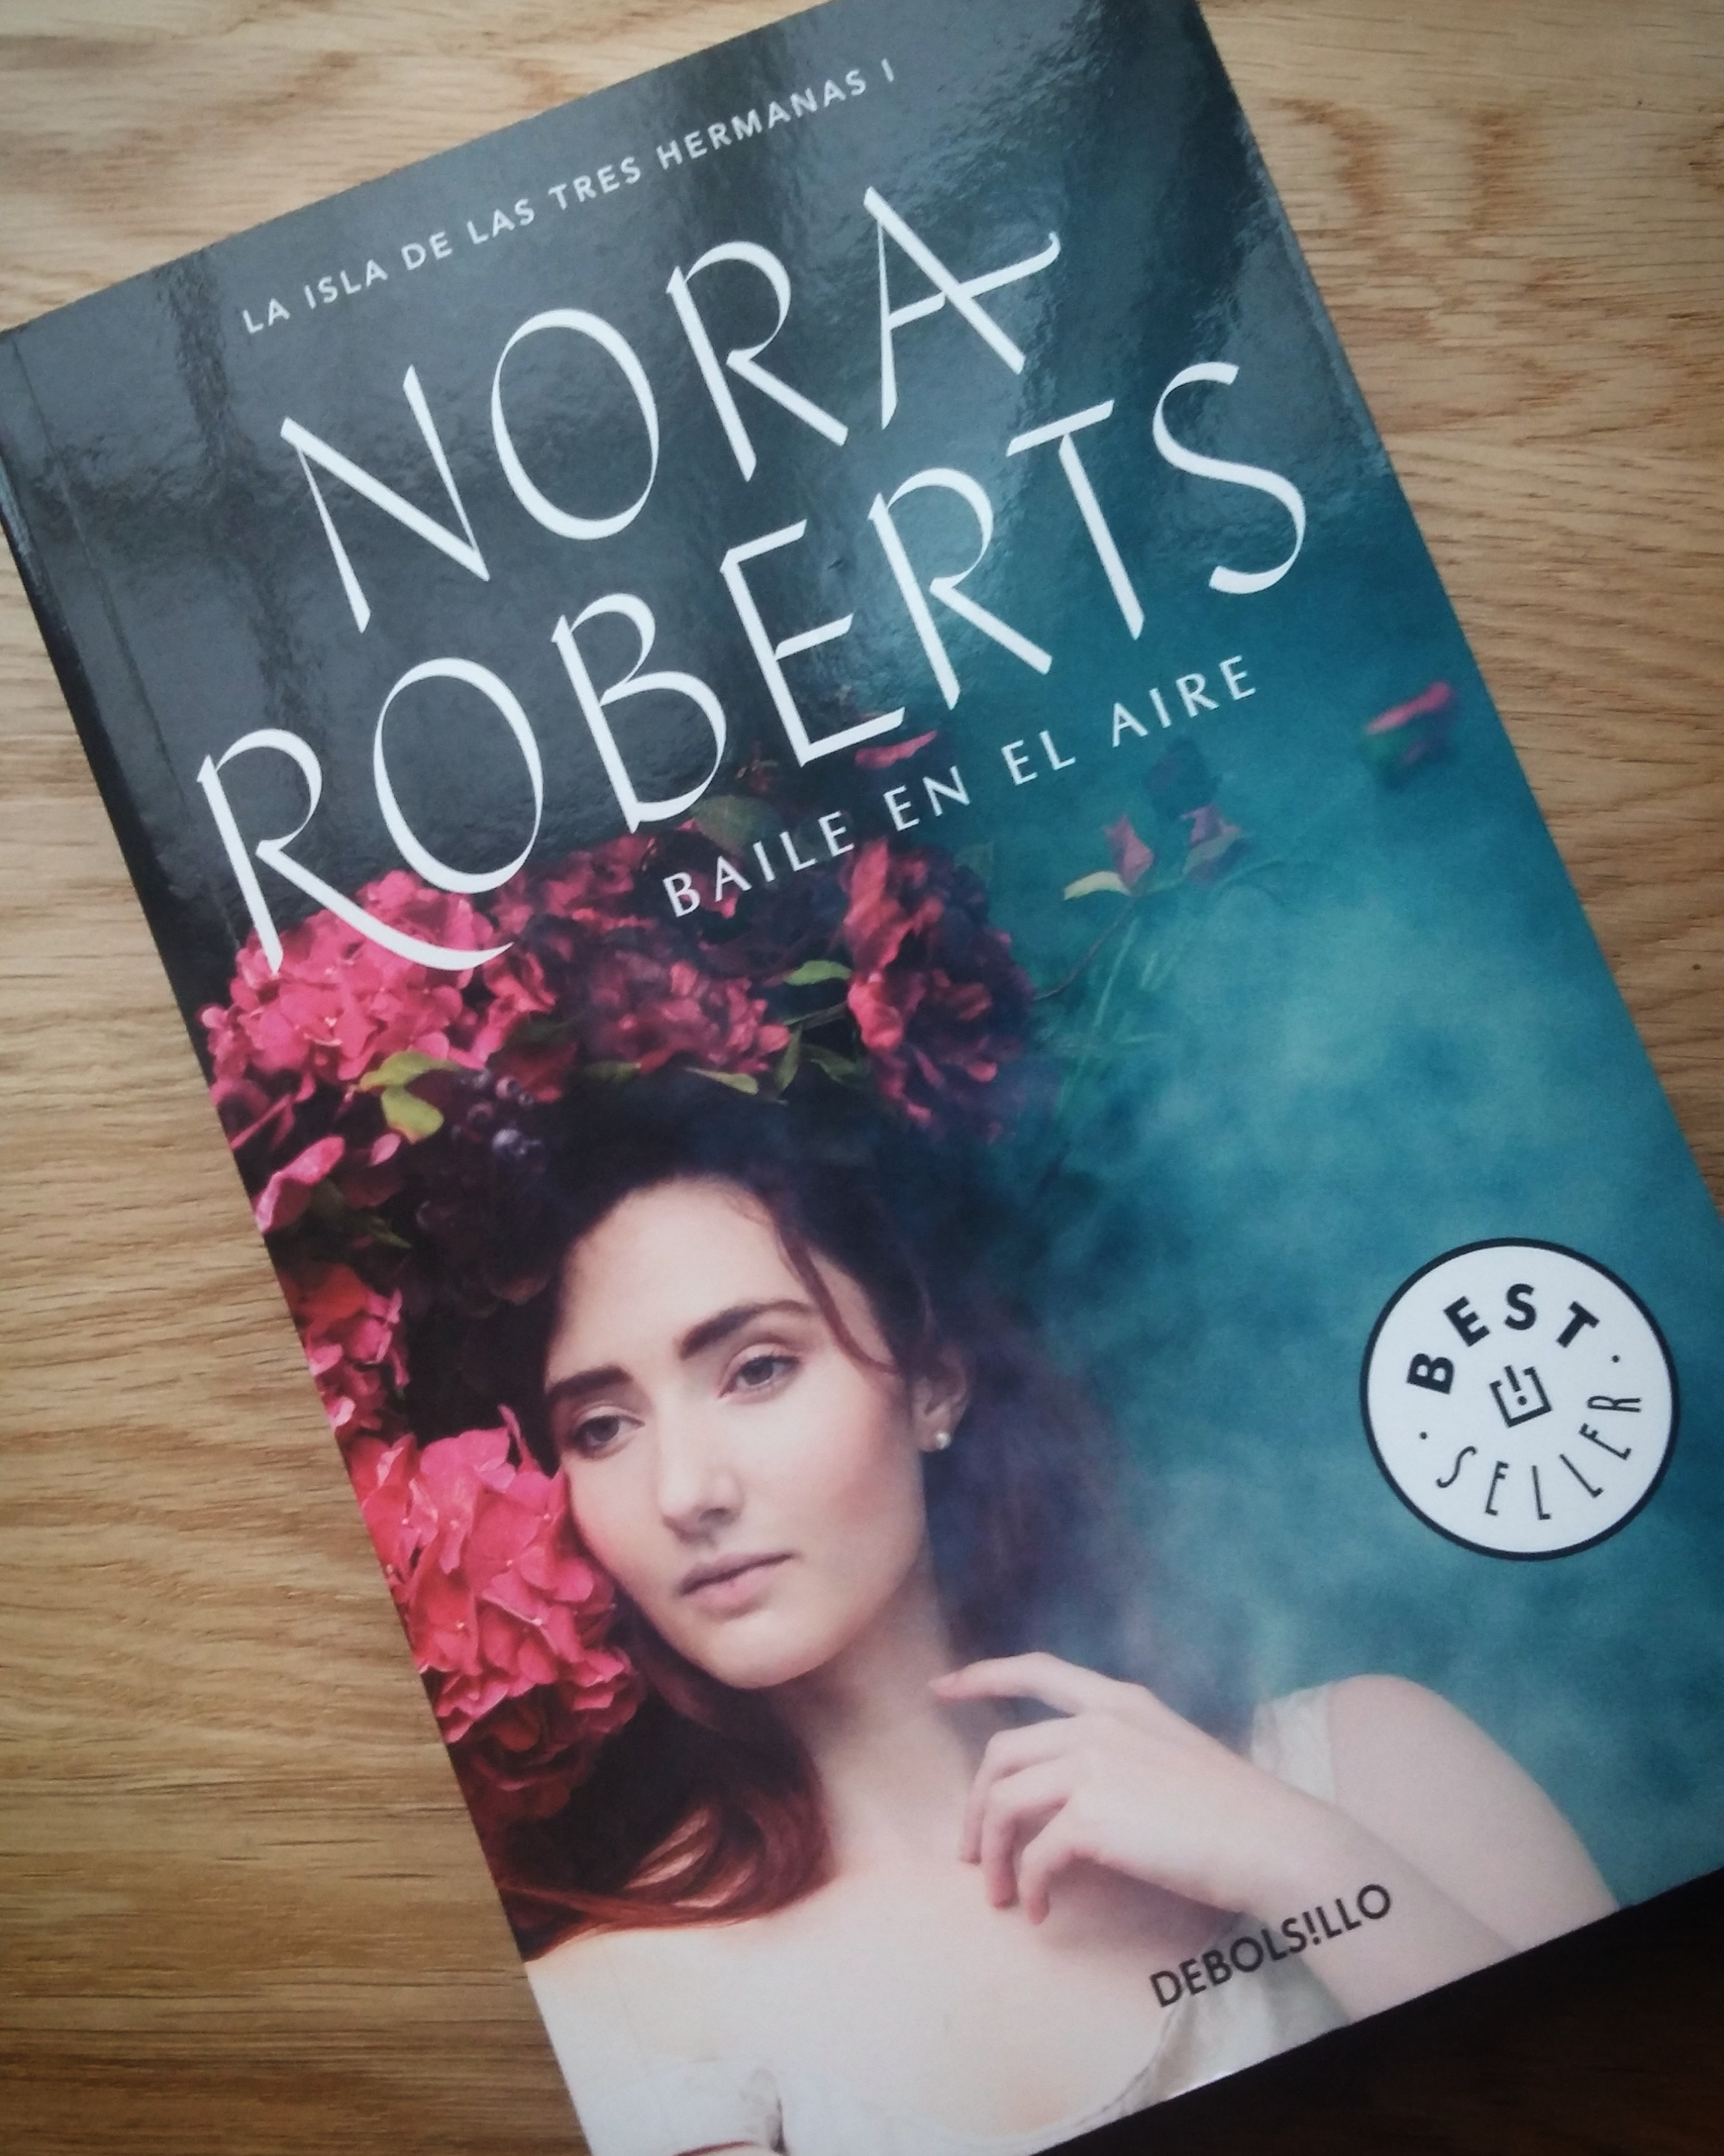 Nora Roberts cover 2016